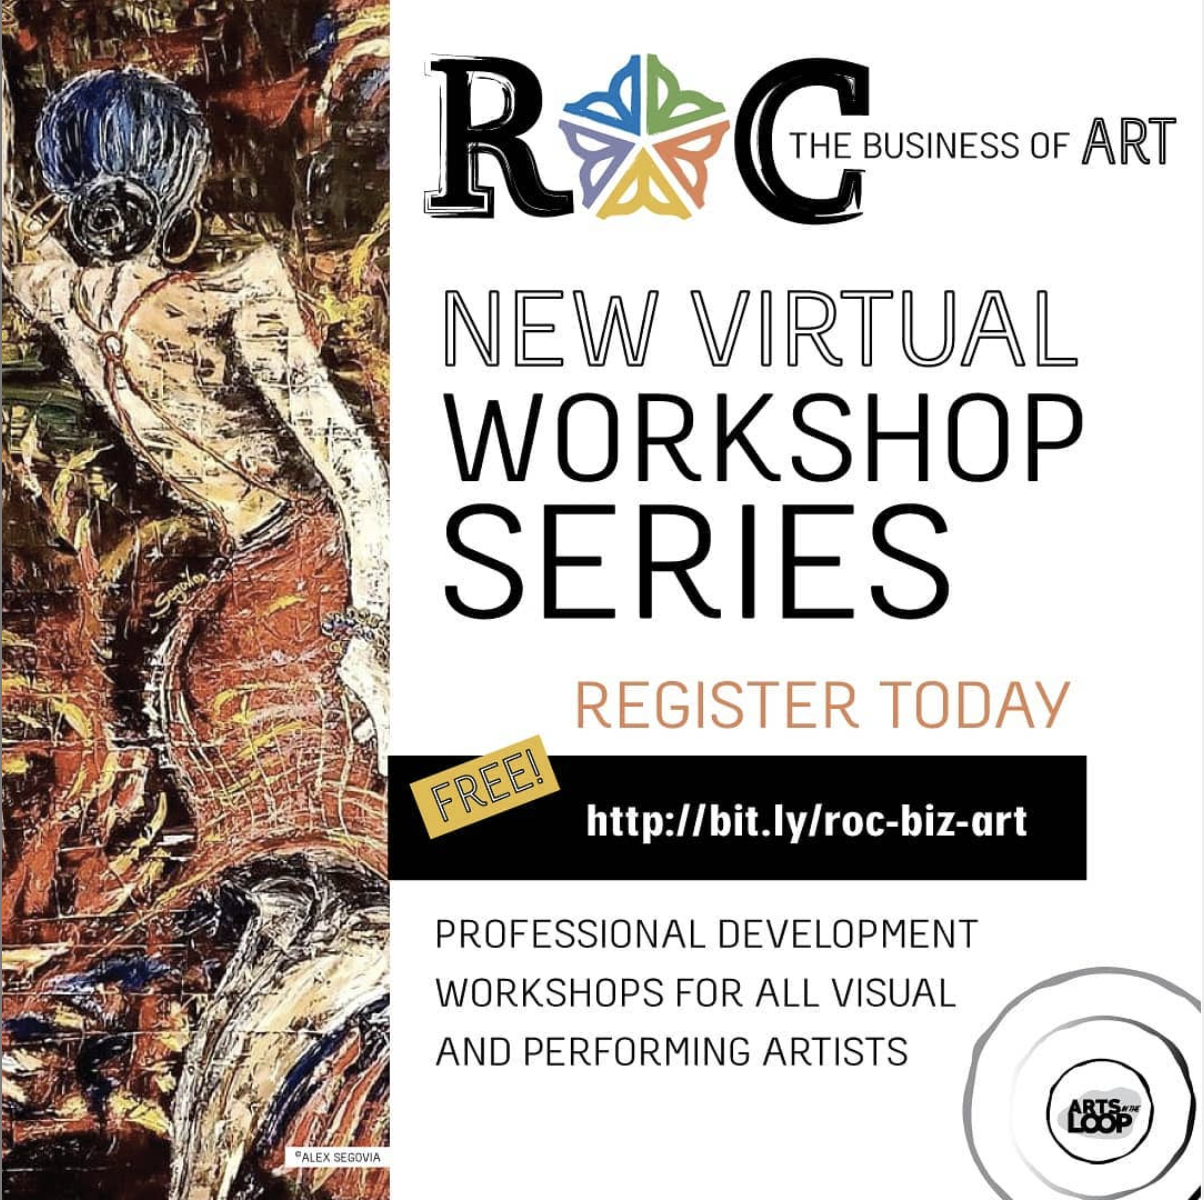 Roc the Business of Art flyer